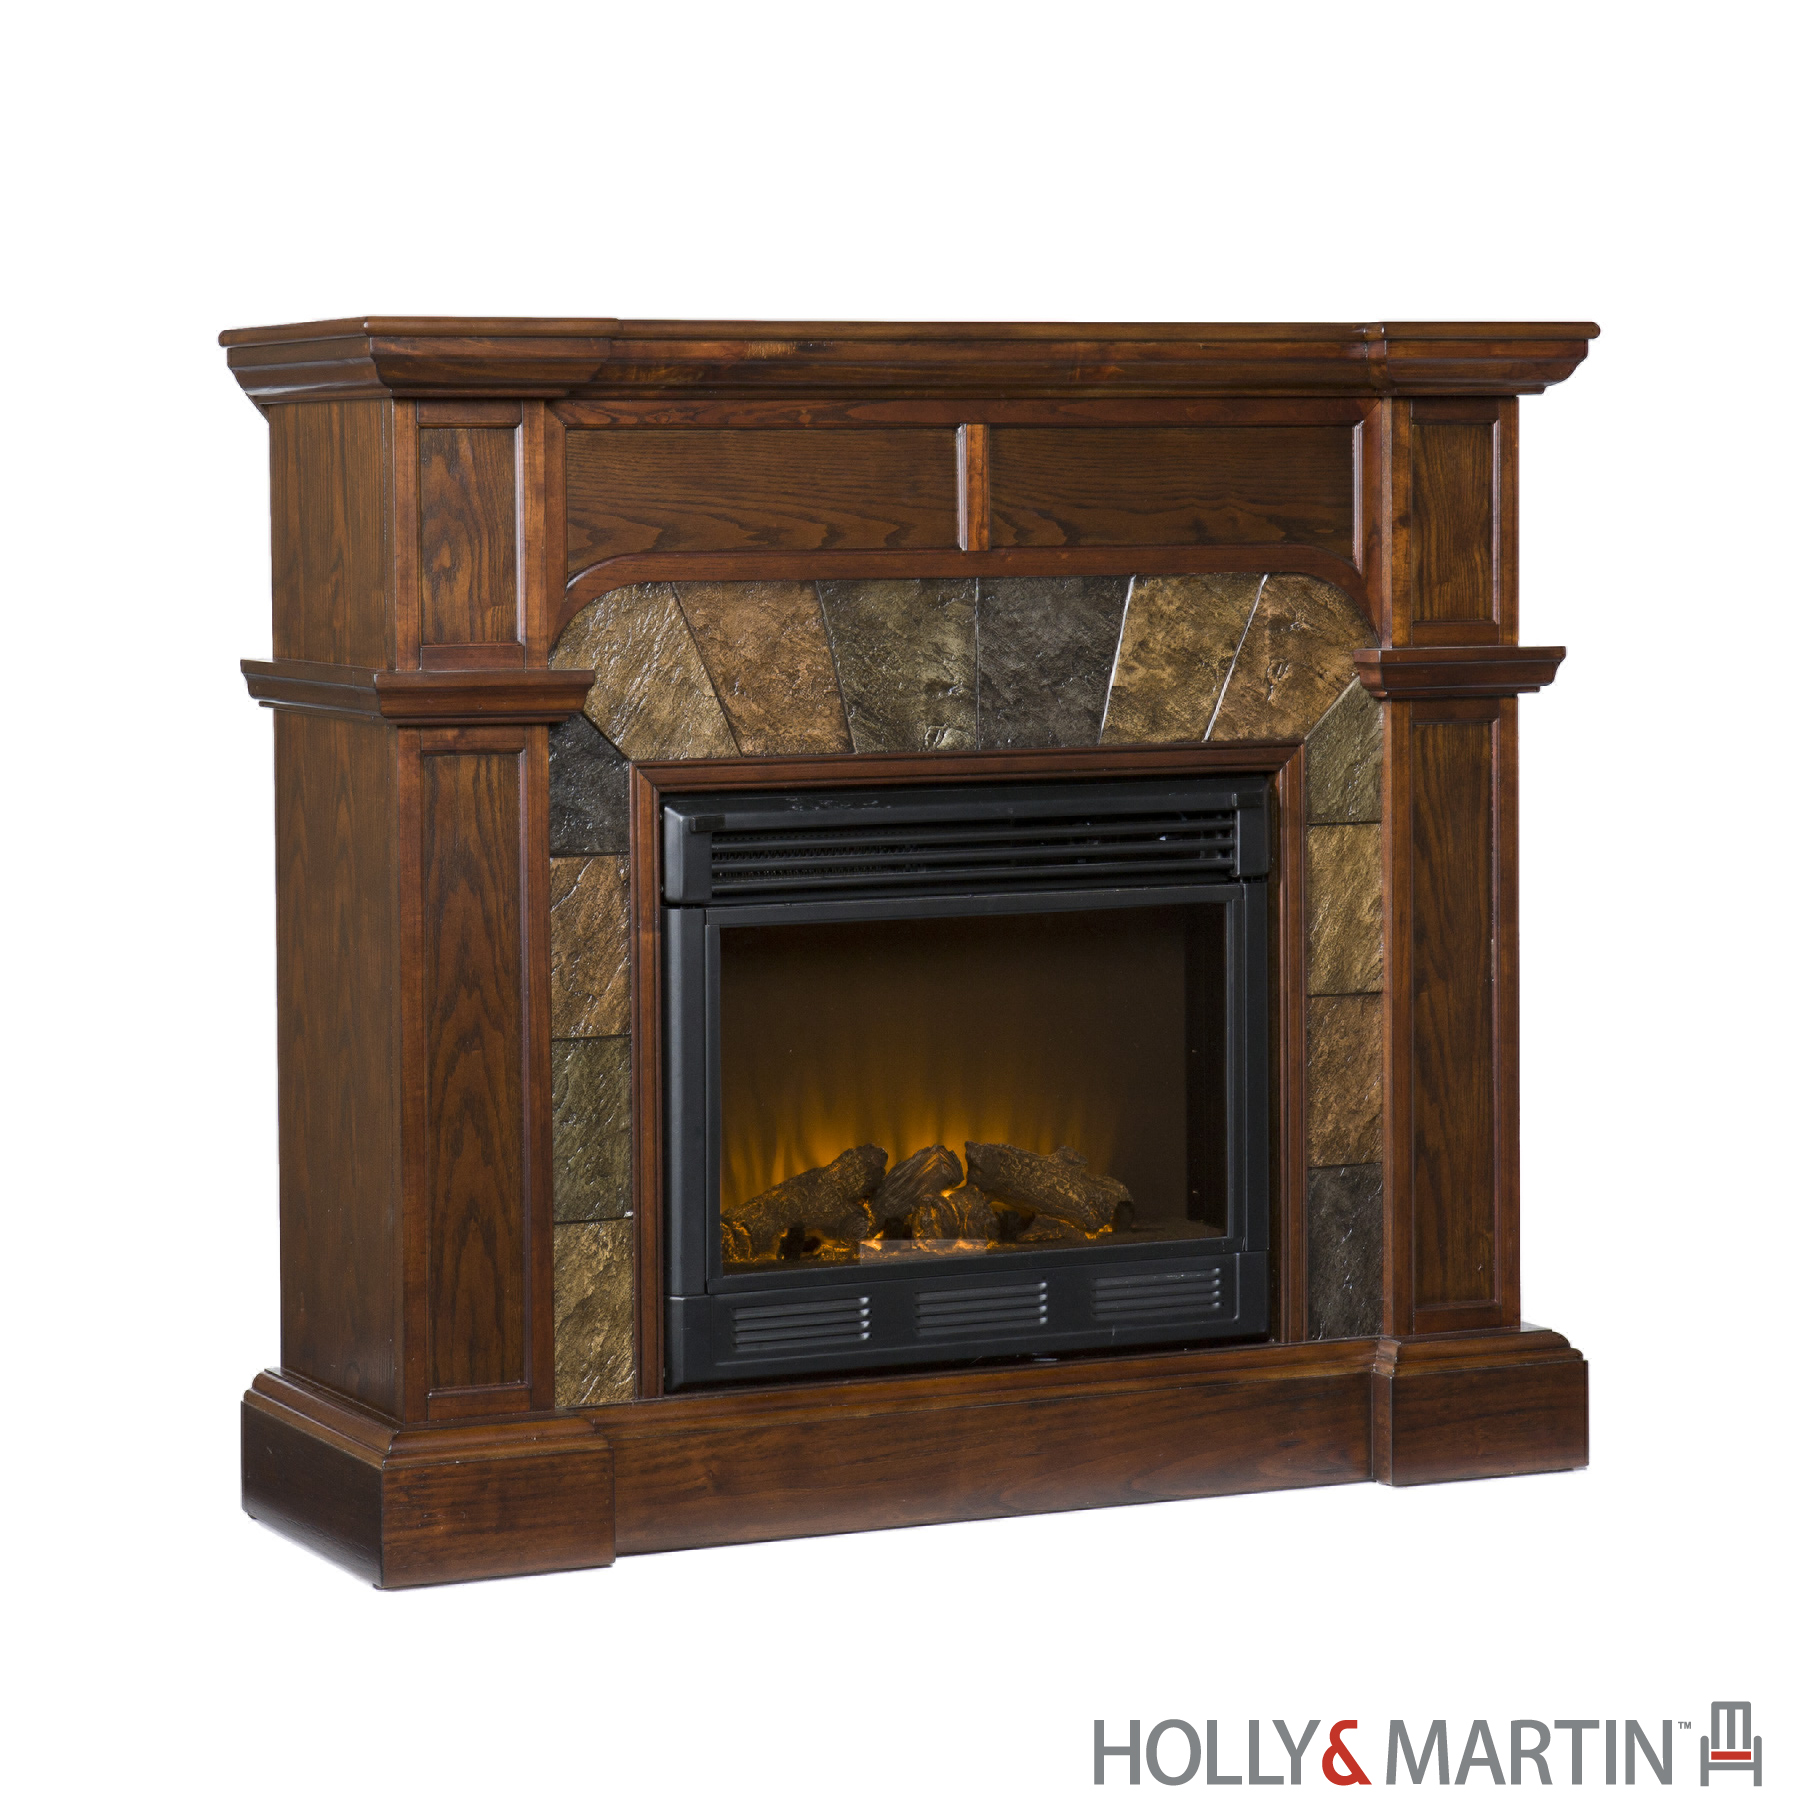 Southern Enterprises 37-081-023-0-12 Cartwright Convertible Electric Fireplace - Classic Espresso